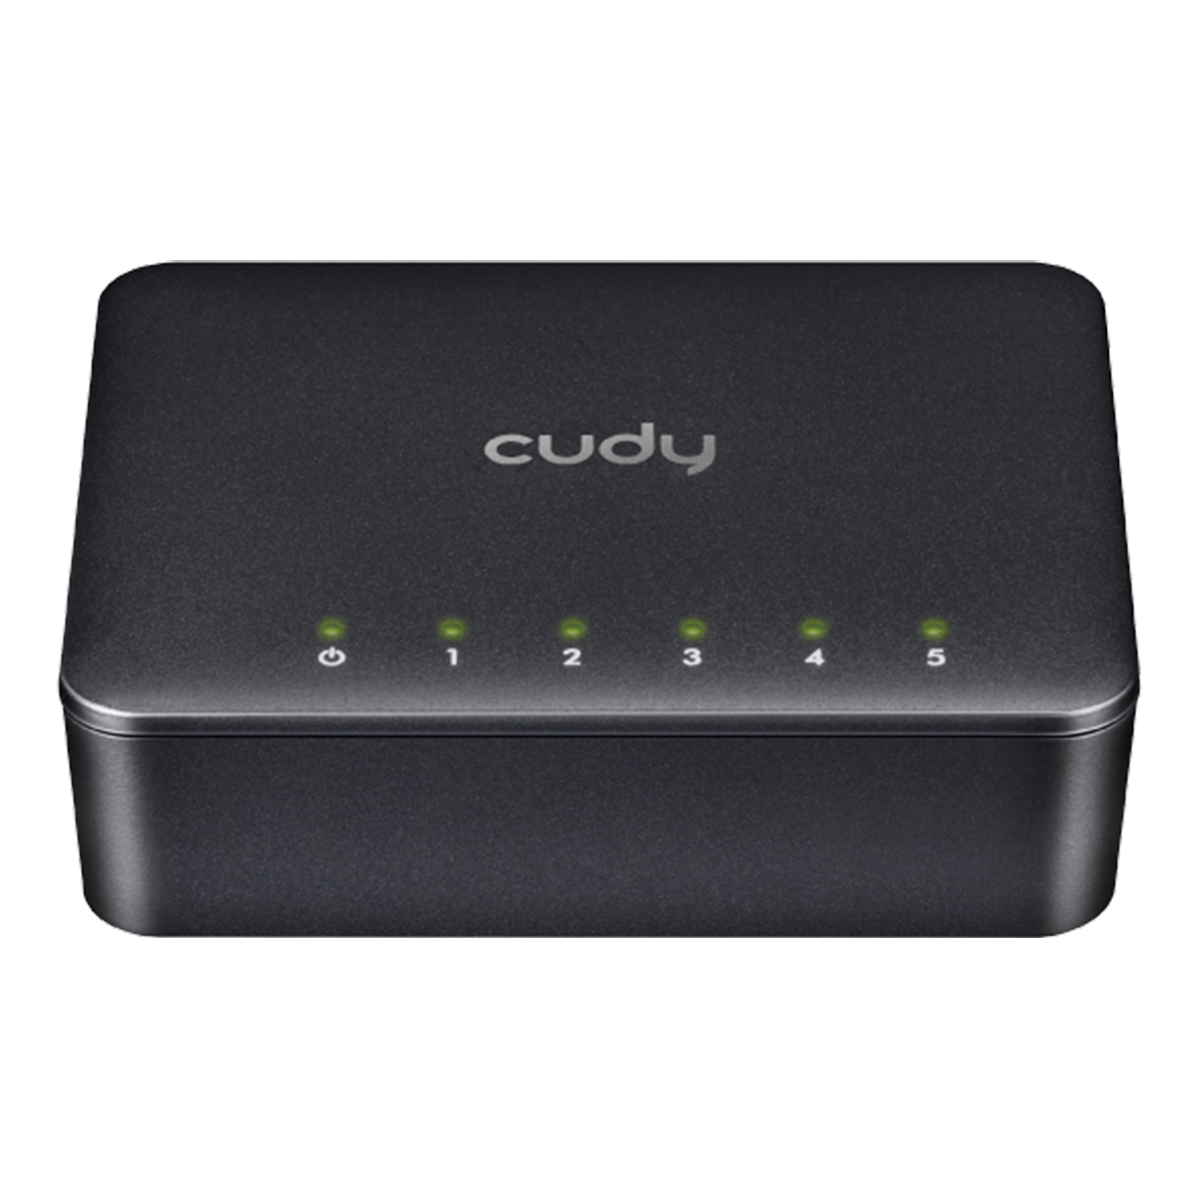 Cudy Multiport-switch med 5 portar, 10/100Mbps